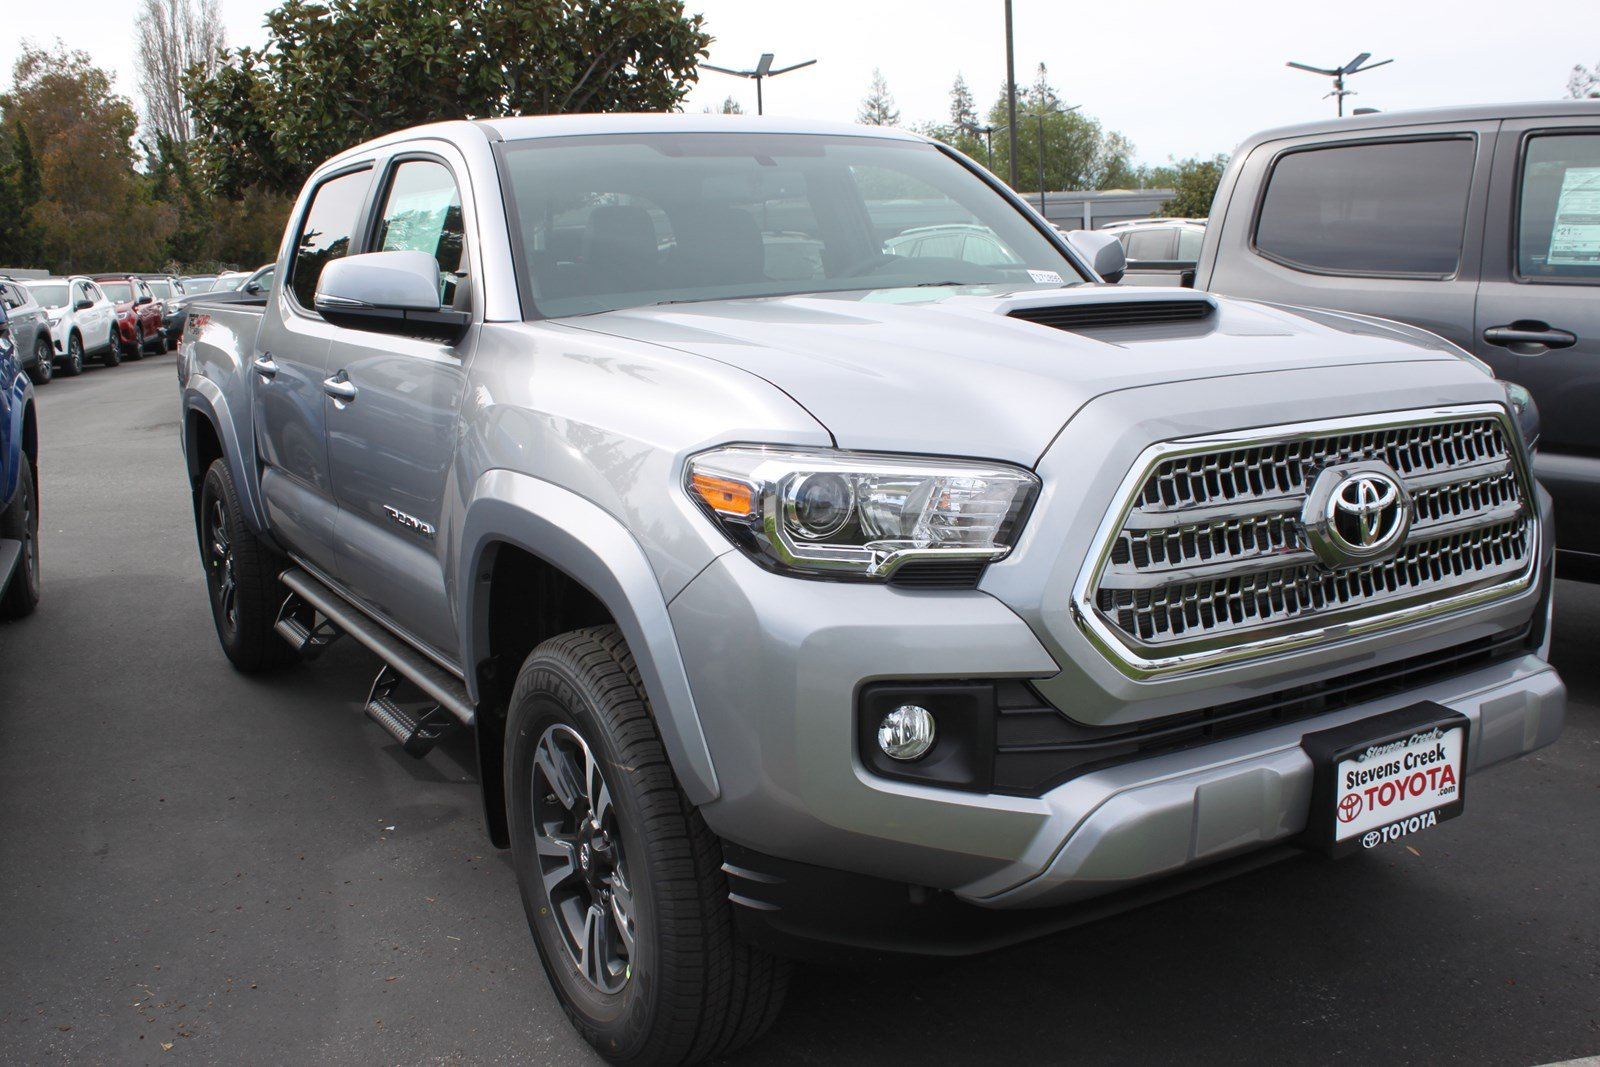 new 2017 toyota tacoma trd sport double cab in san jose t171899 stevens creek toyota. Black Bedroom Furniture Sets. Home Design Ideas